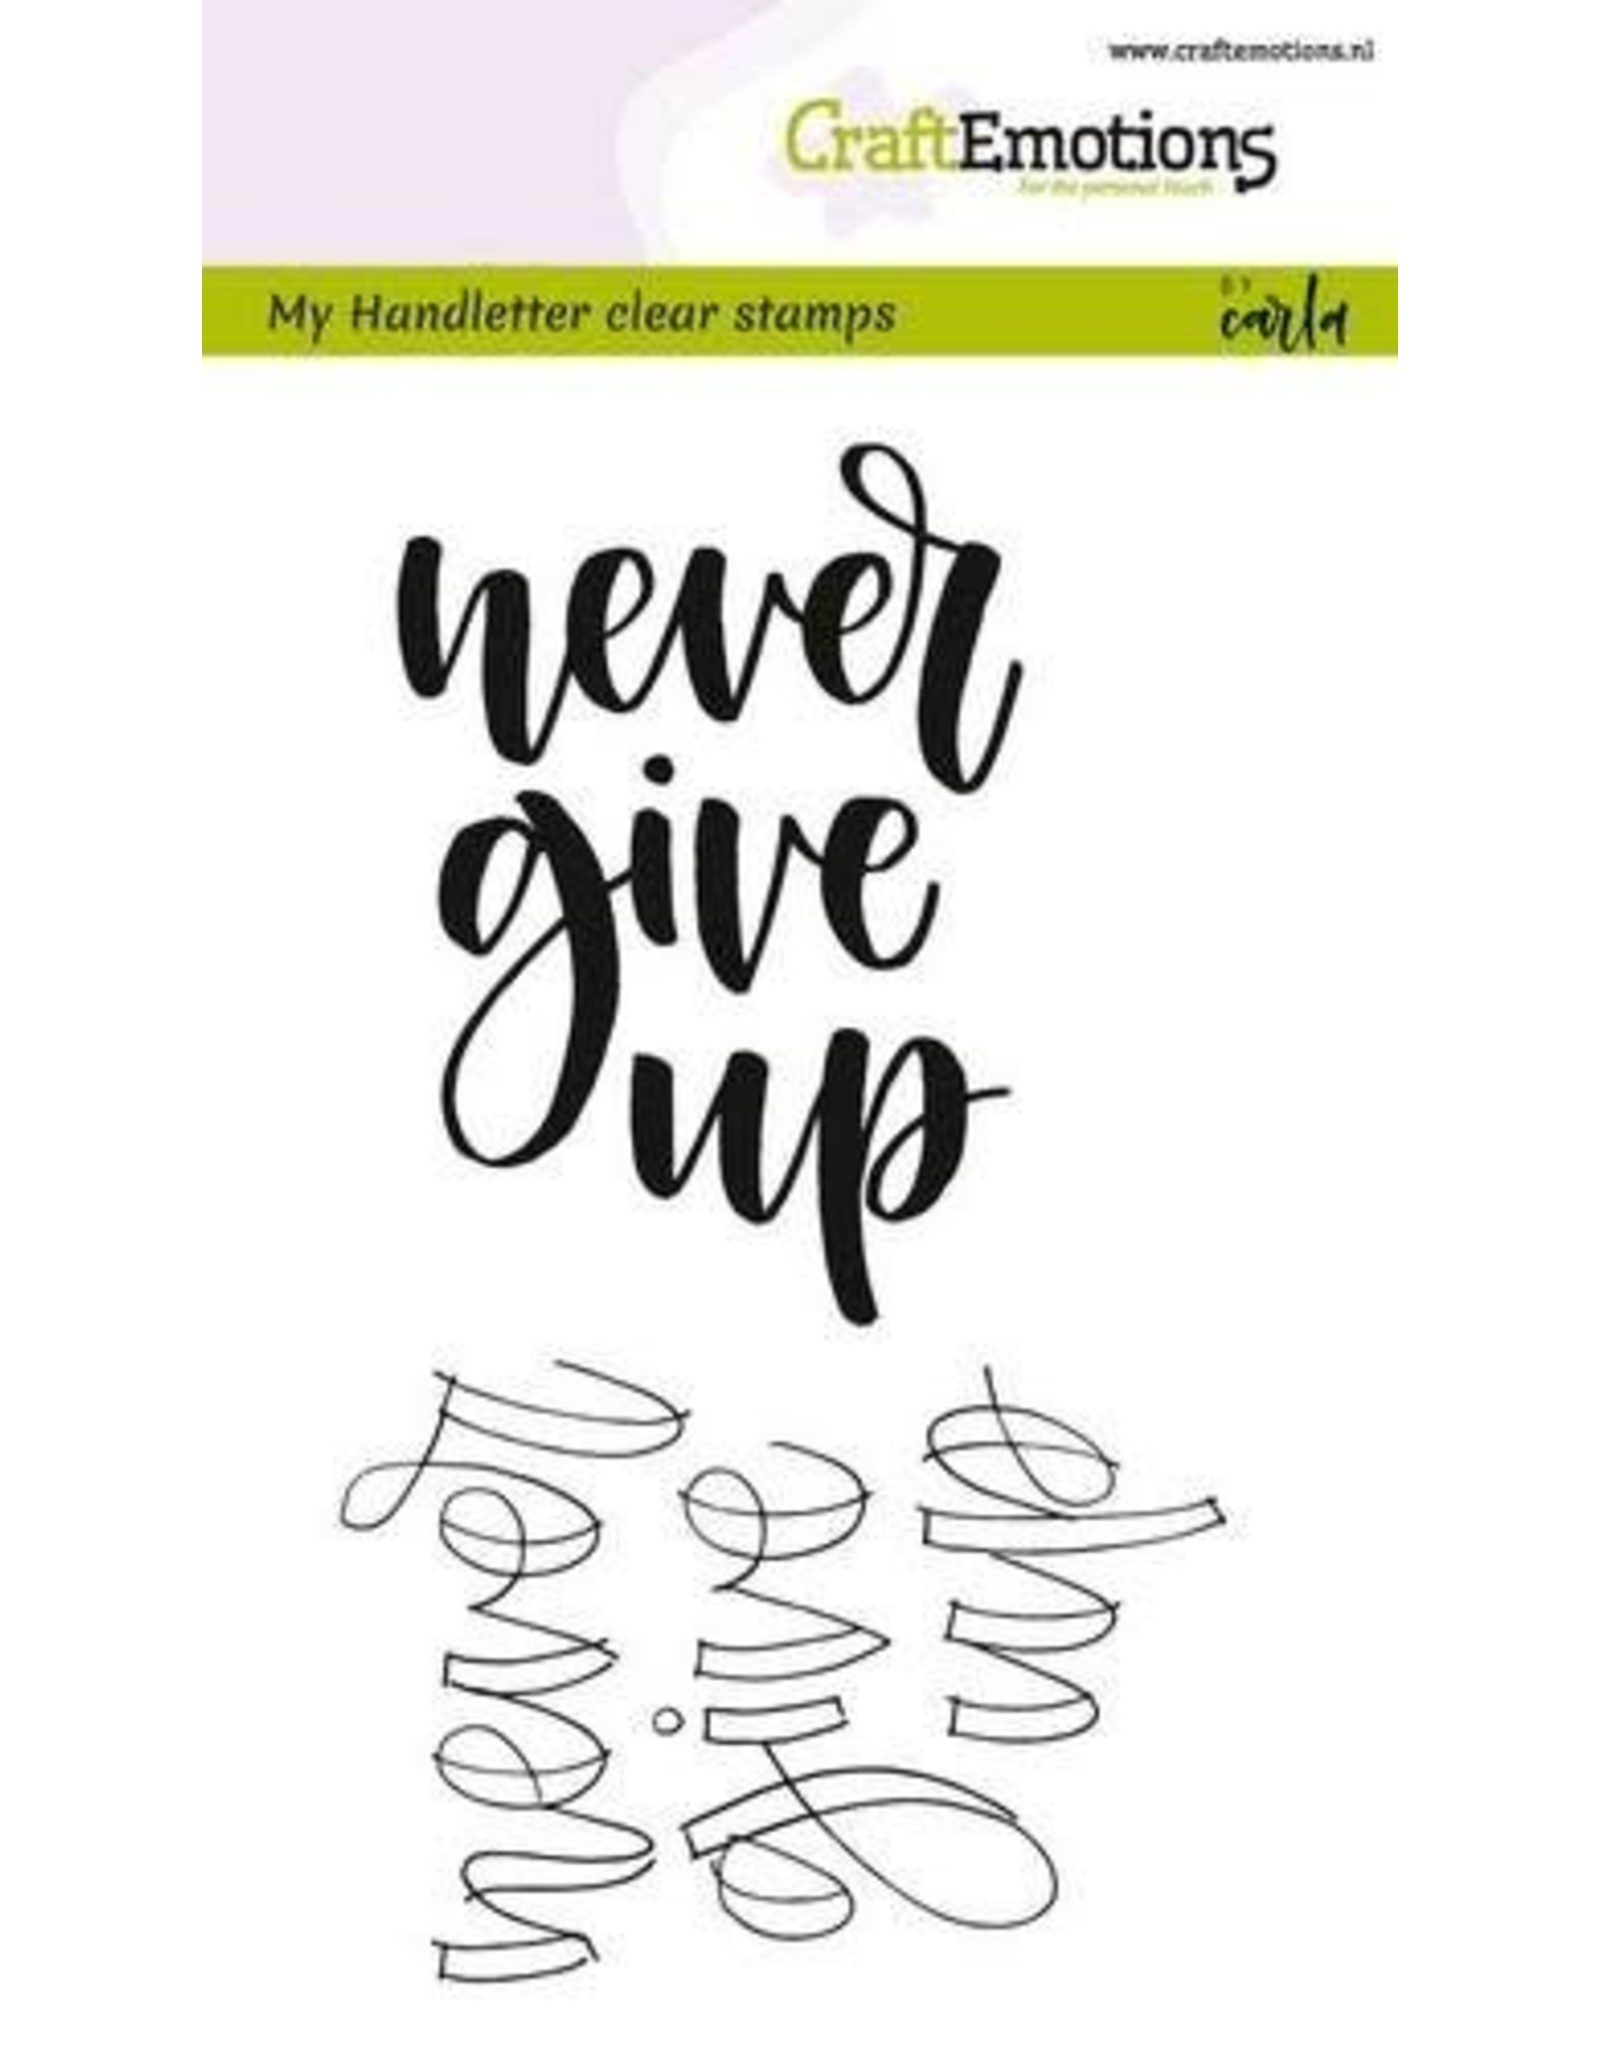 Craft Emotions craftemotions clearstamps a6-handletter-nevergiveup eng